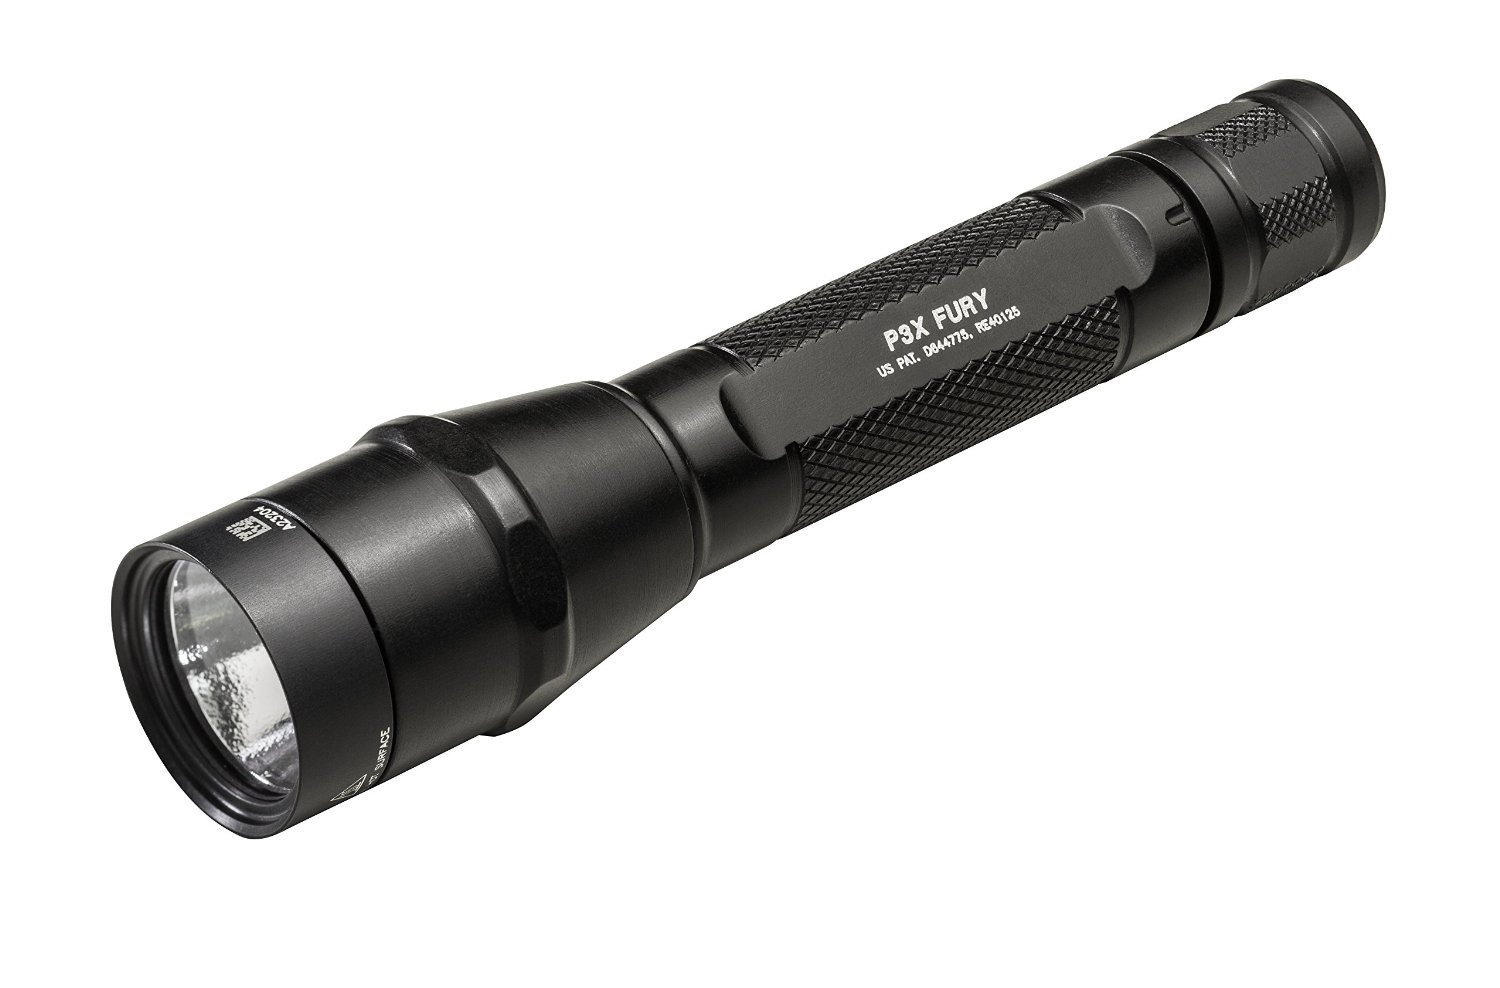 SureFire P3X Fury Dual-Output LED Flashlight with Anodized Aluminum Body, Black by SureFire